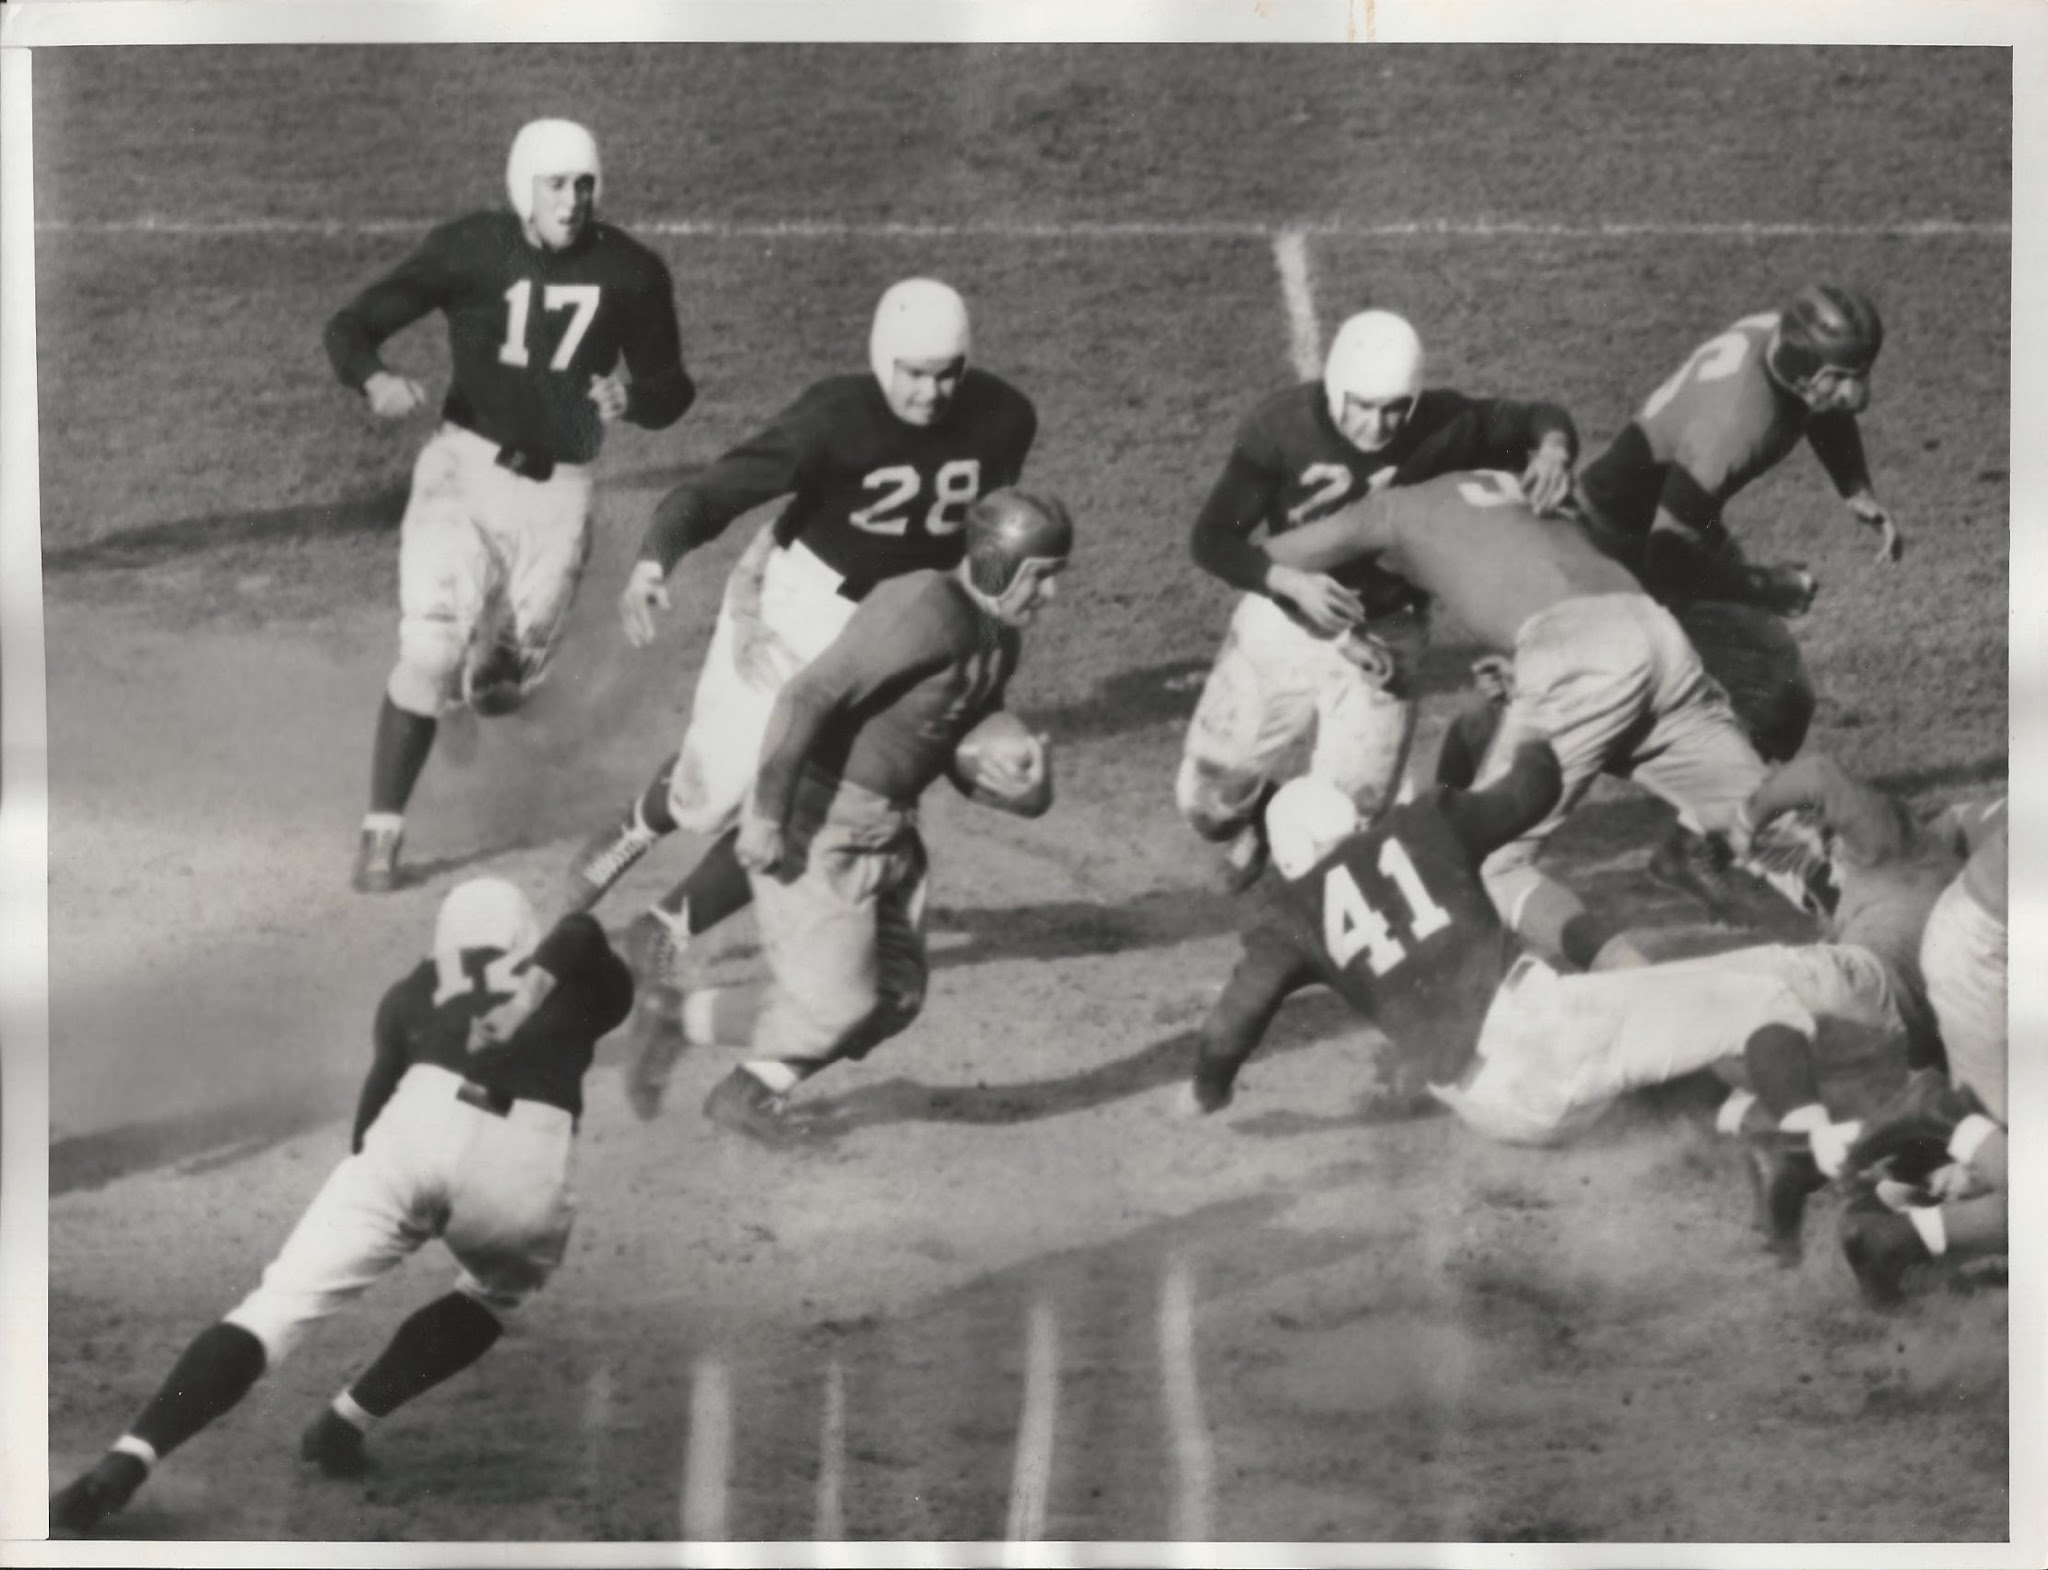 John Karcis (with the ball), Philadelphia Eagles at New York Giants (October 16, 1938)